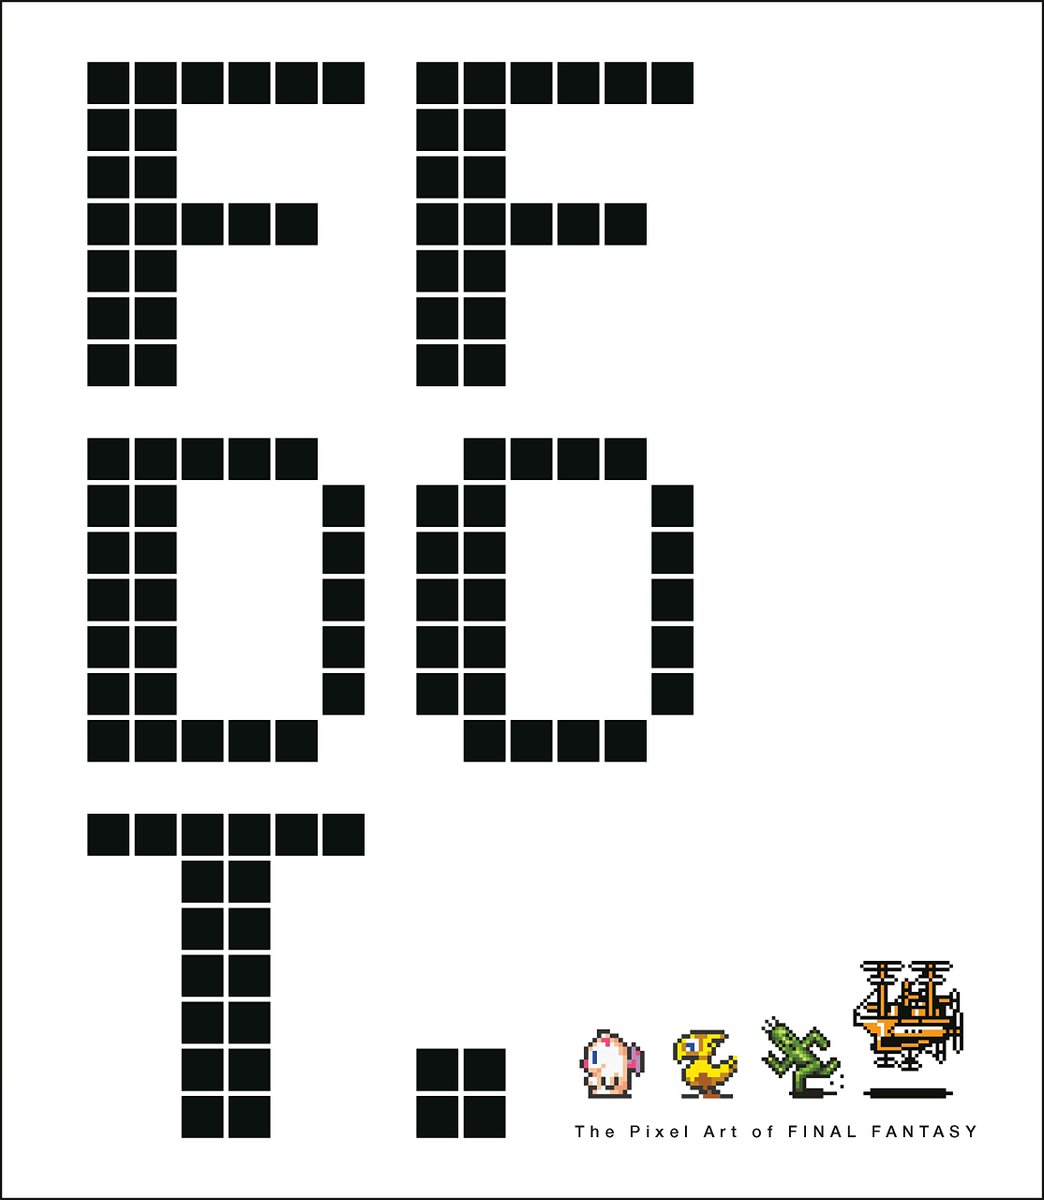 Just released- FF DOT: The Pixel Art of Final Fantasy, a 280-page book of sprite sheets and art prints of Final Fantasys classic pixel art. Also contains developer interviews. Currently a 33% off, to $16: amzn.to/2Smdpnq